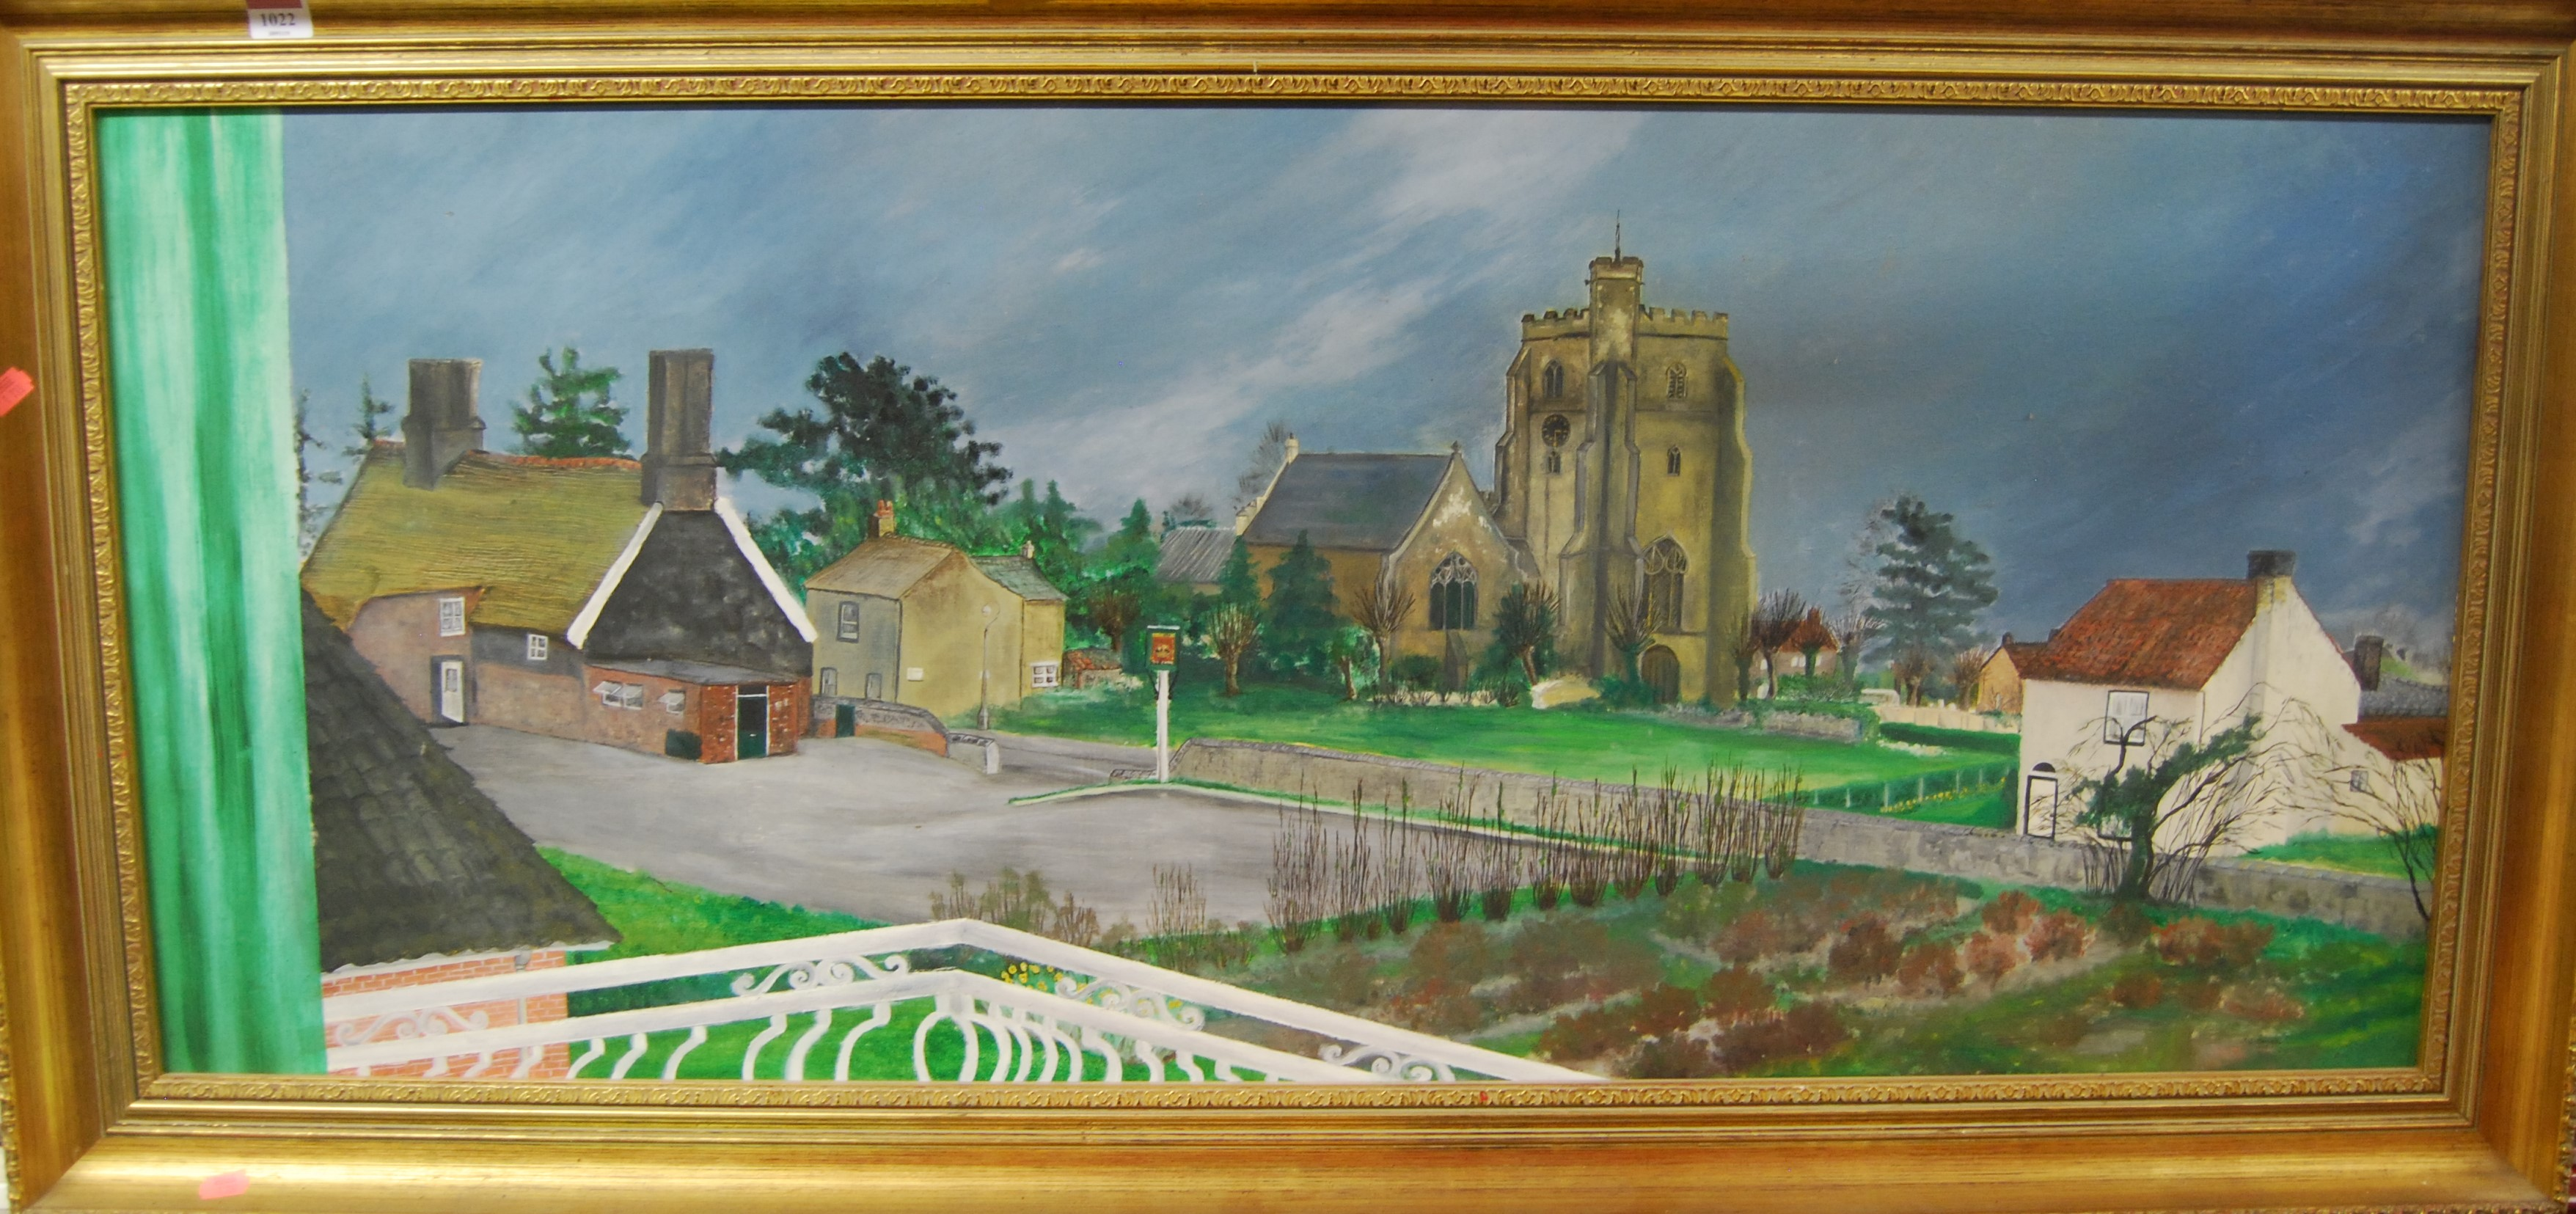 Lot 1022 - C.S. Caruso - The village church, acrylic on board, signed lower right, 50 x 120cm